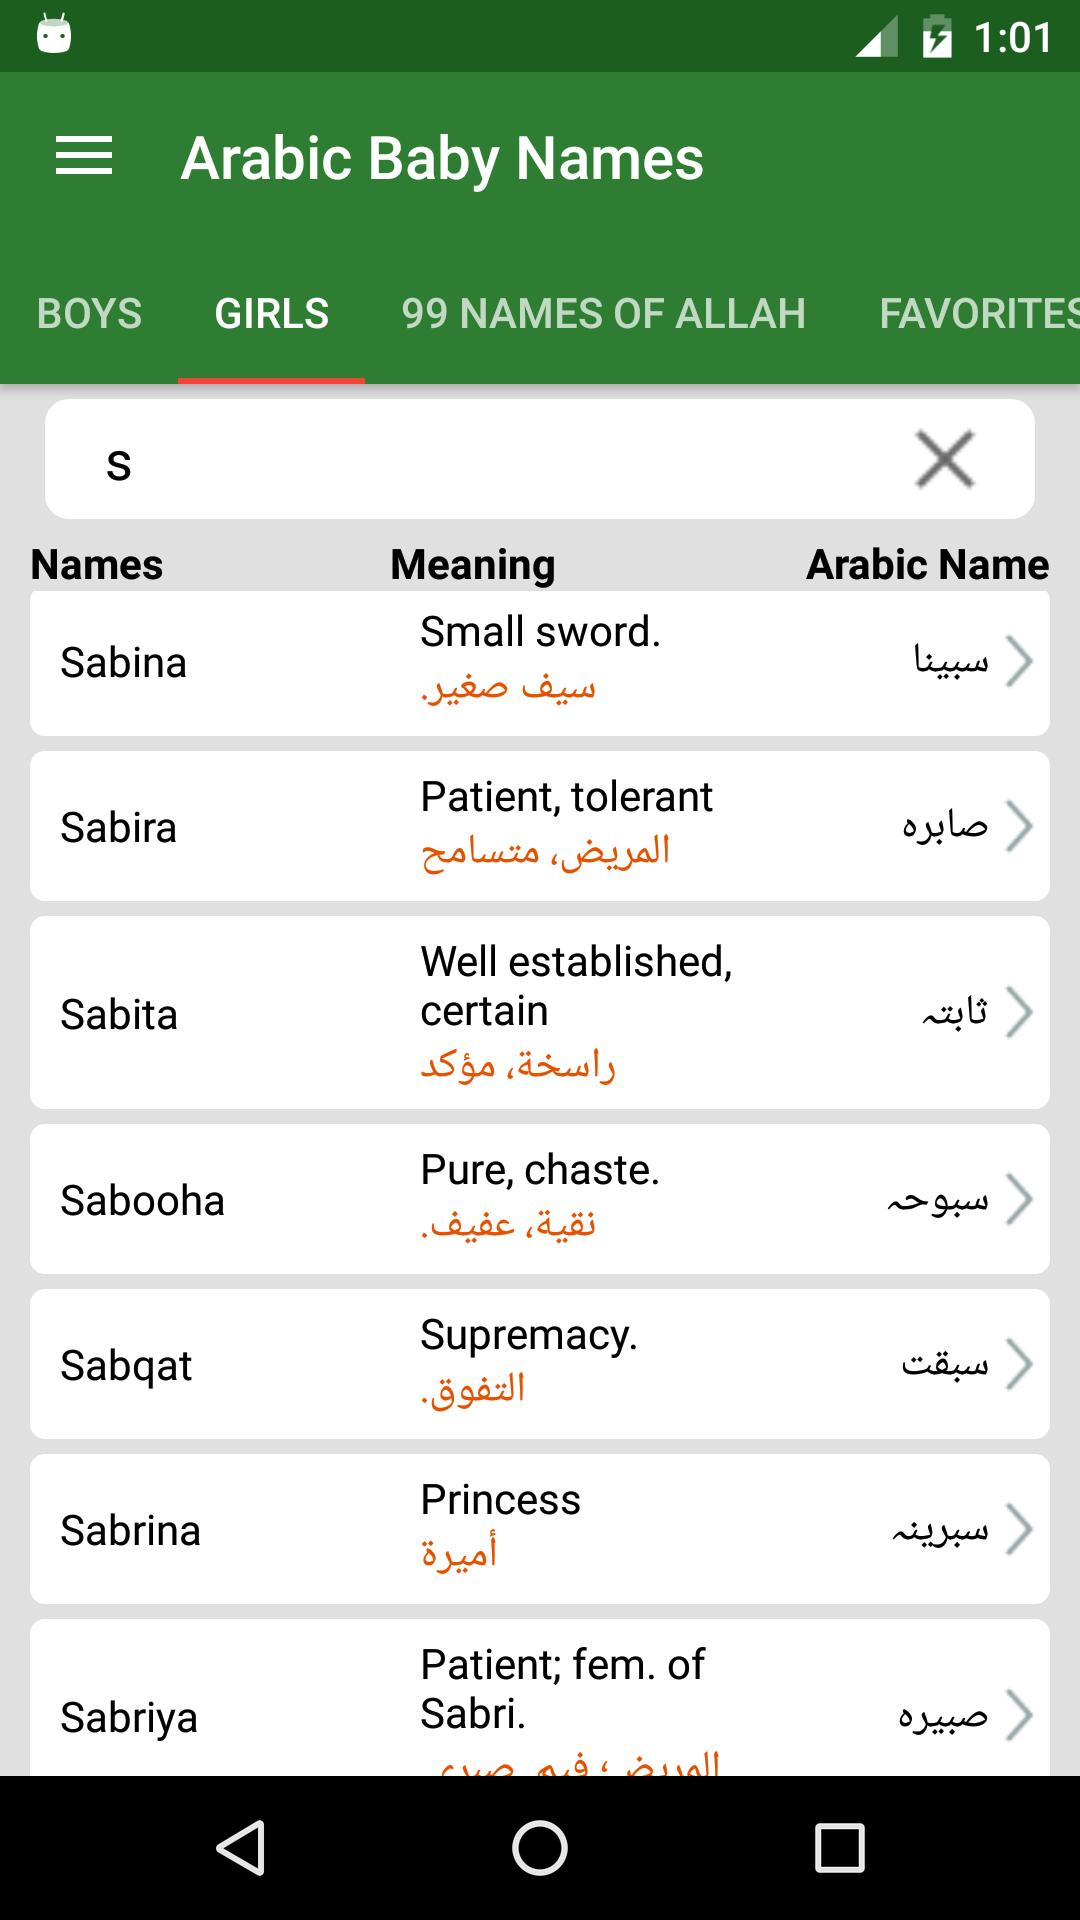 Arabic Baby Names for Android - APK Download